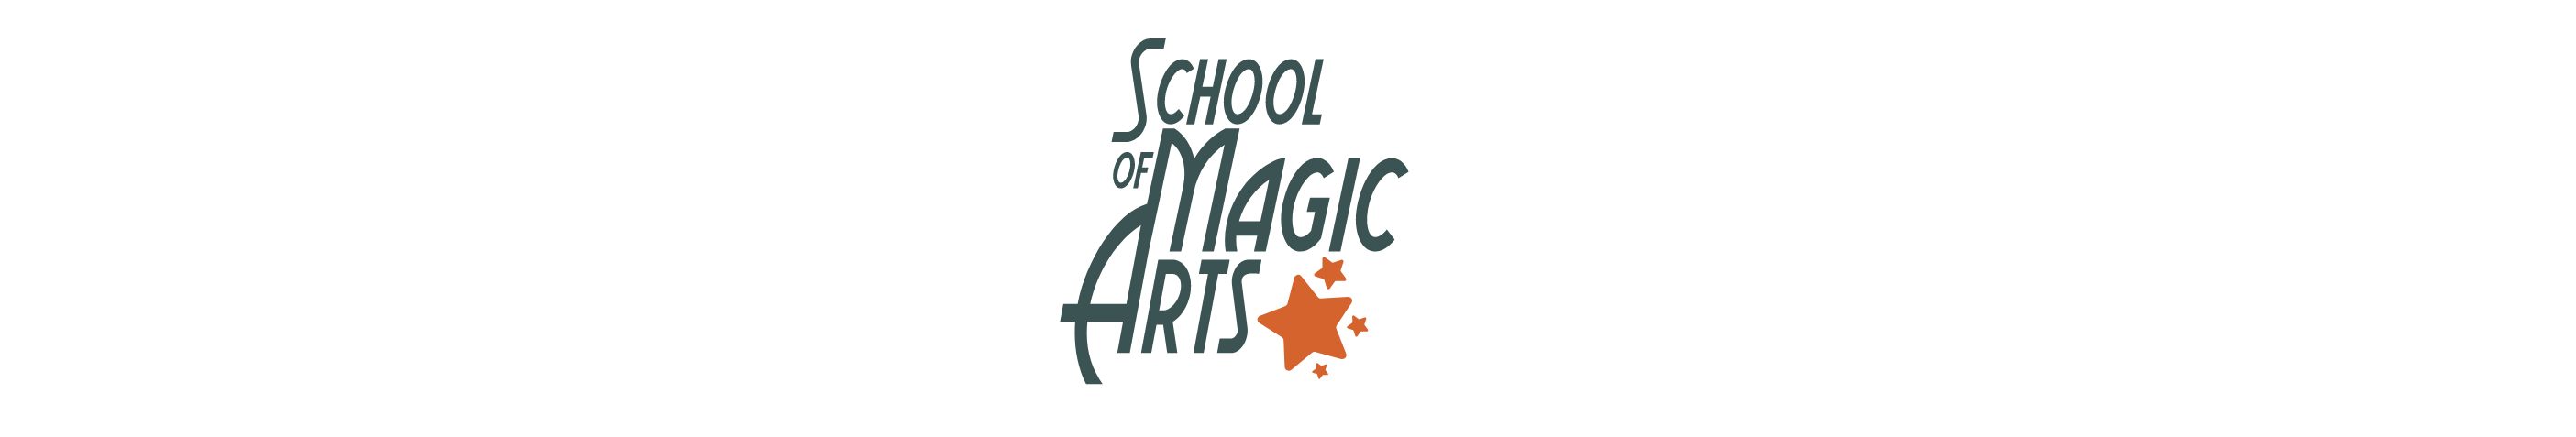 School of Magic Arts logo